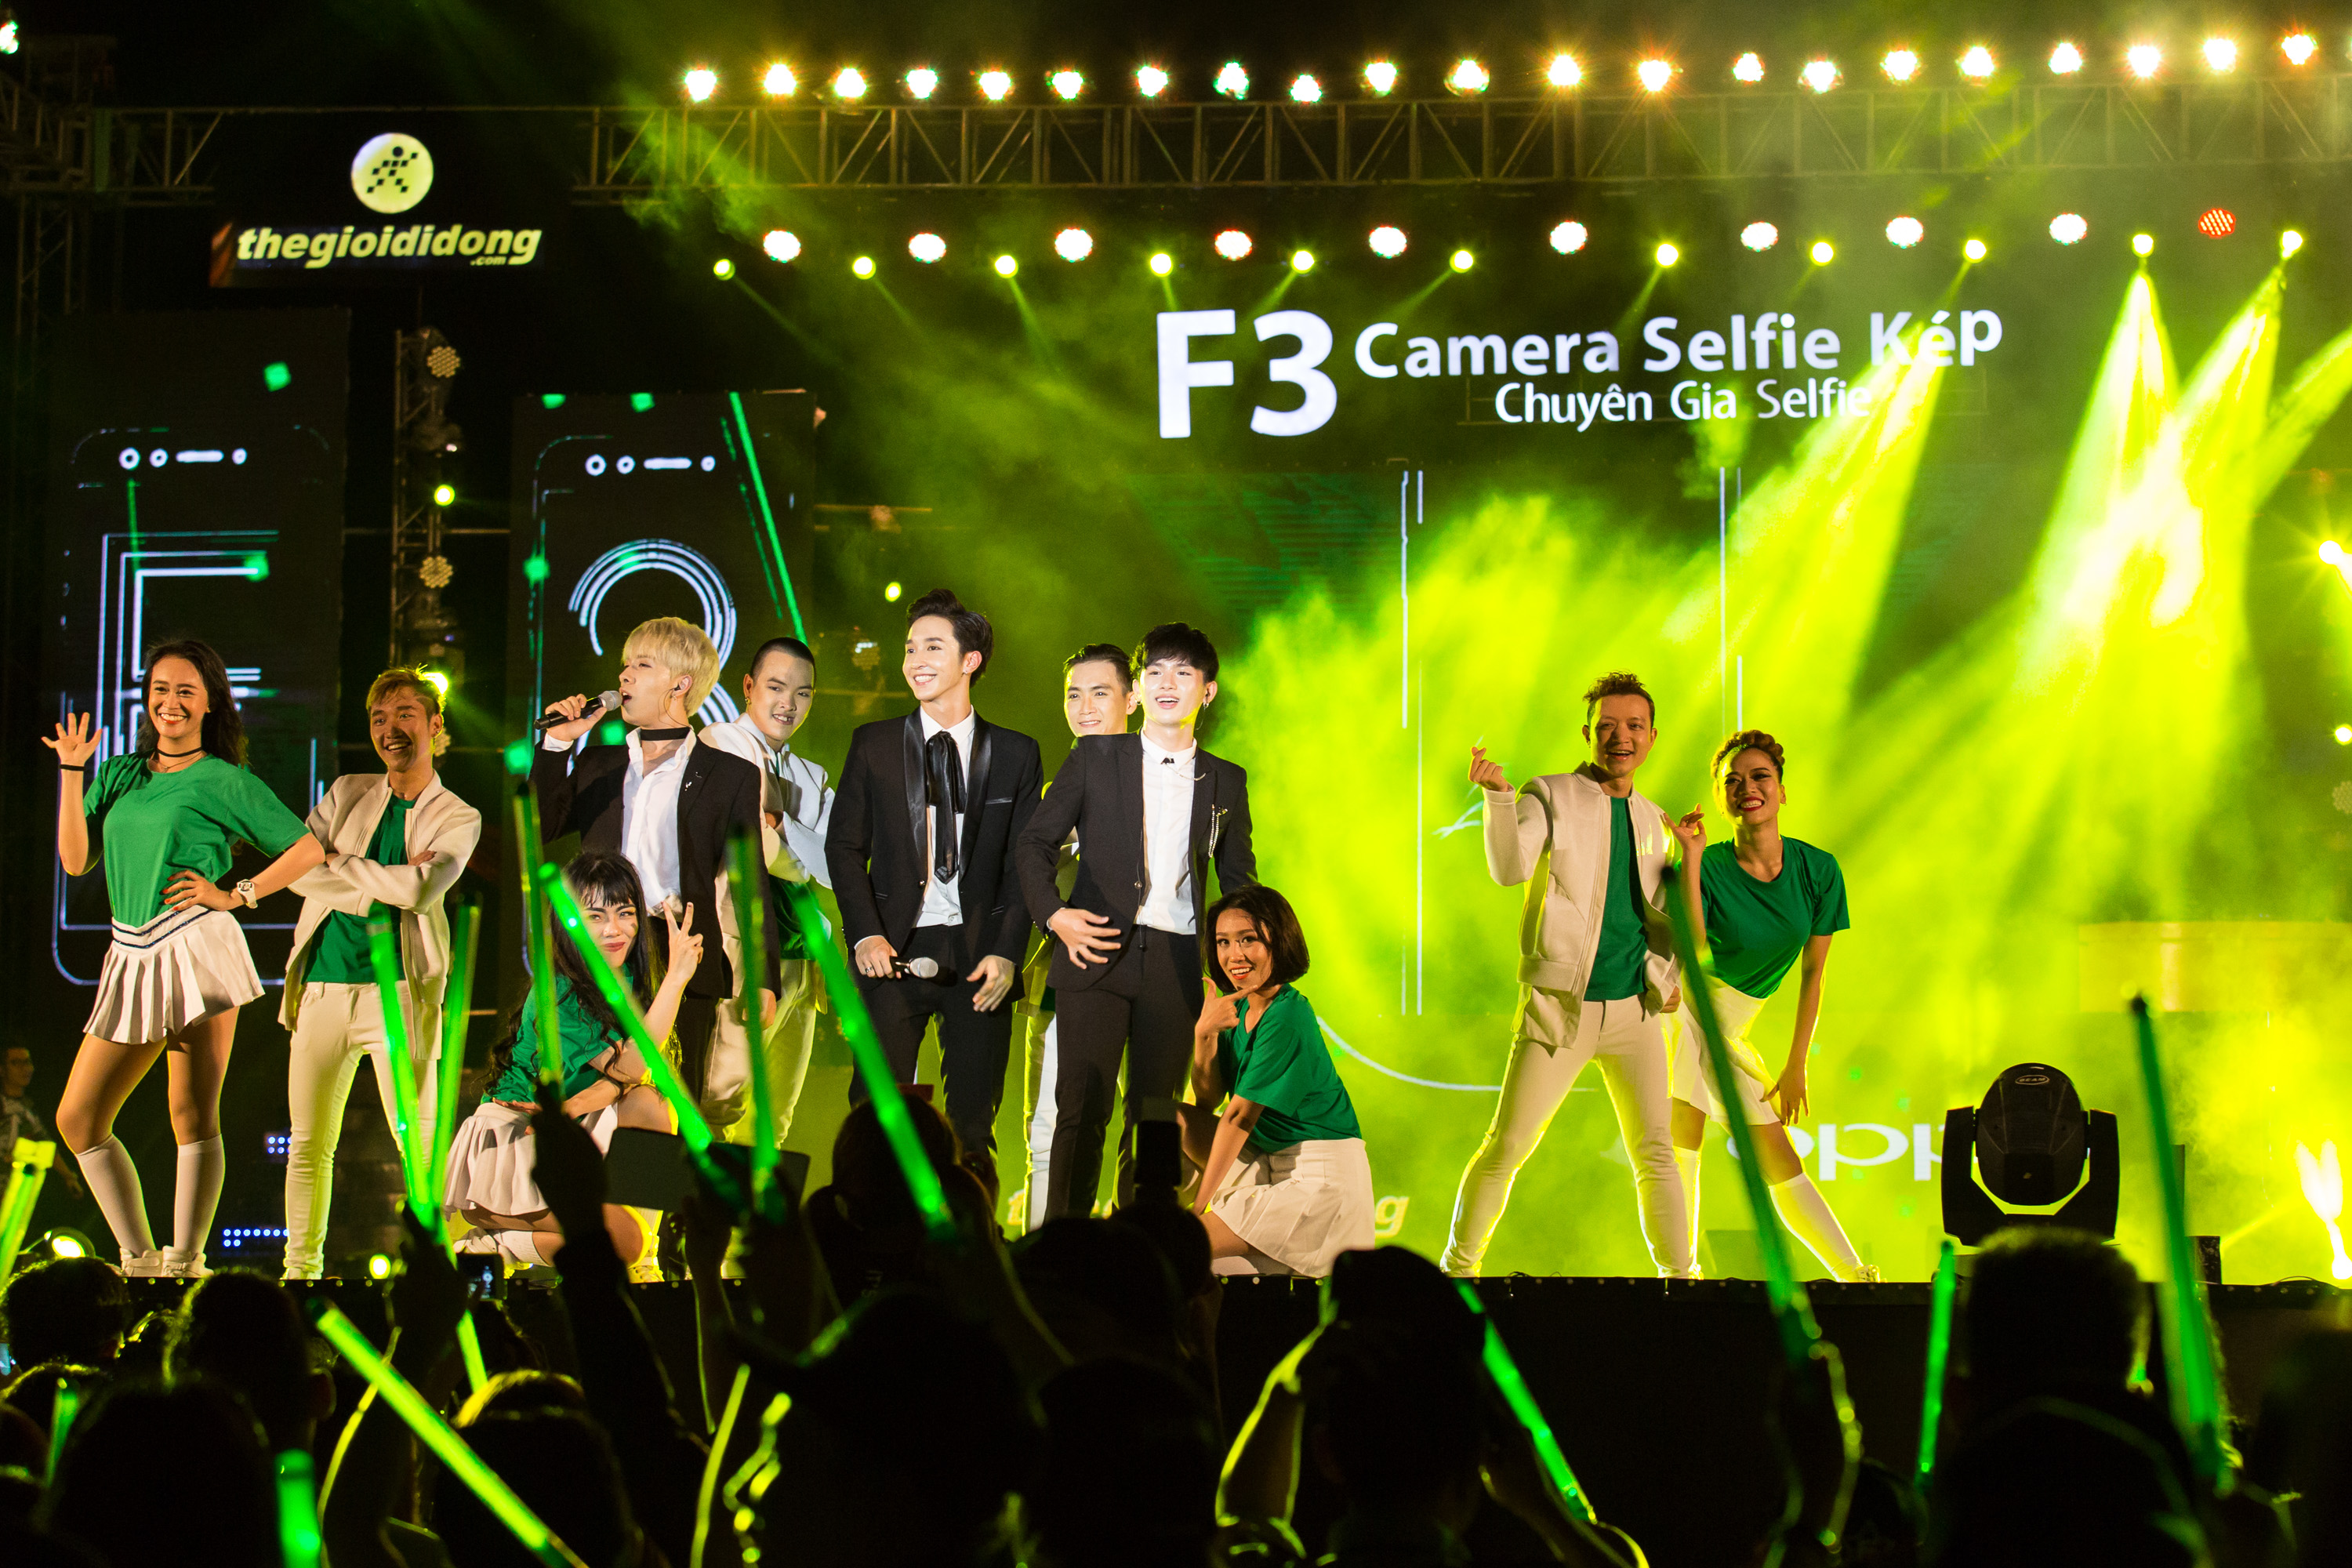 oppo f3 show - 3